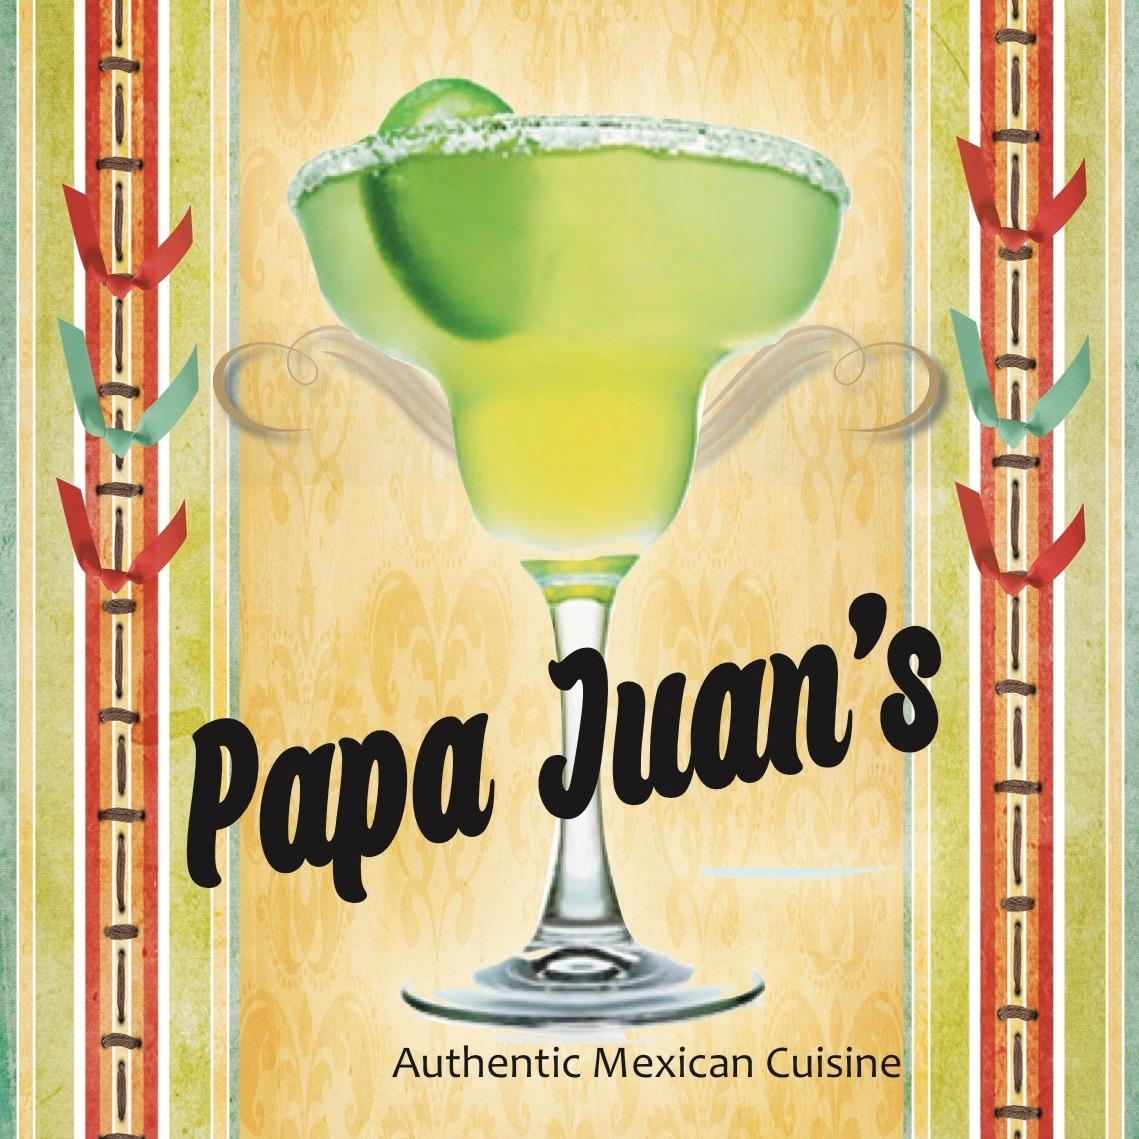 Papa Juan's Mexican Grille